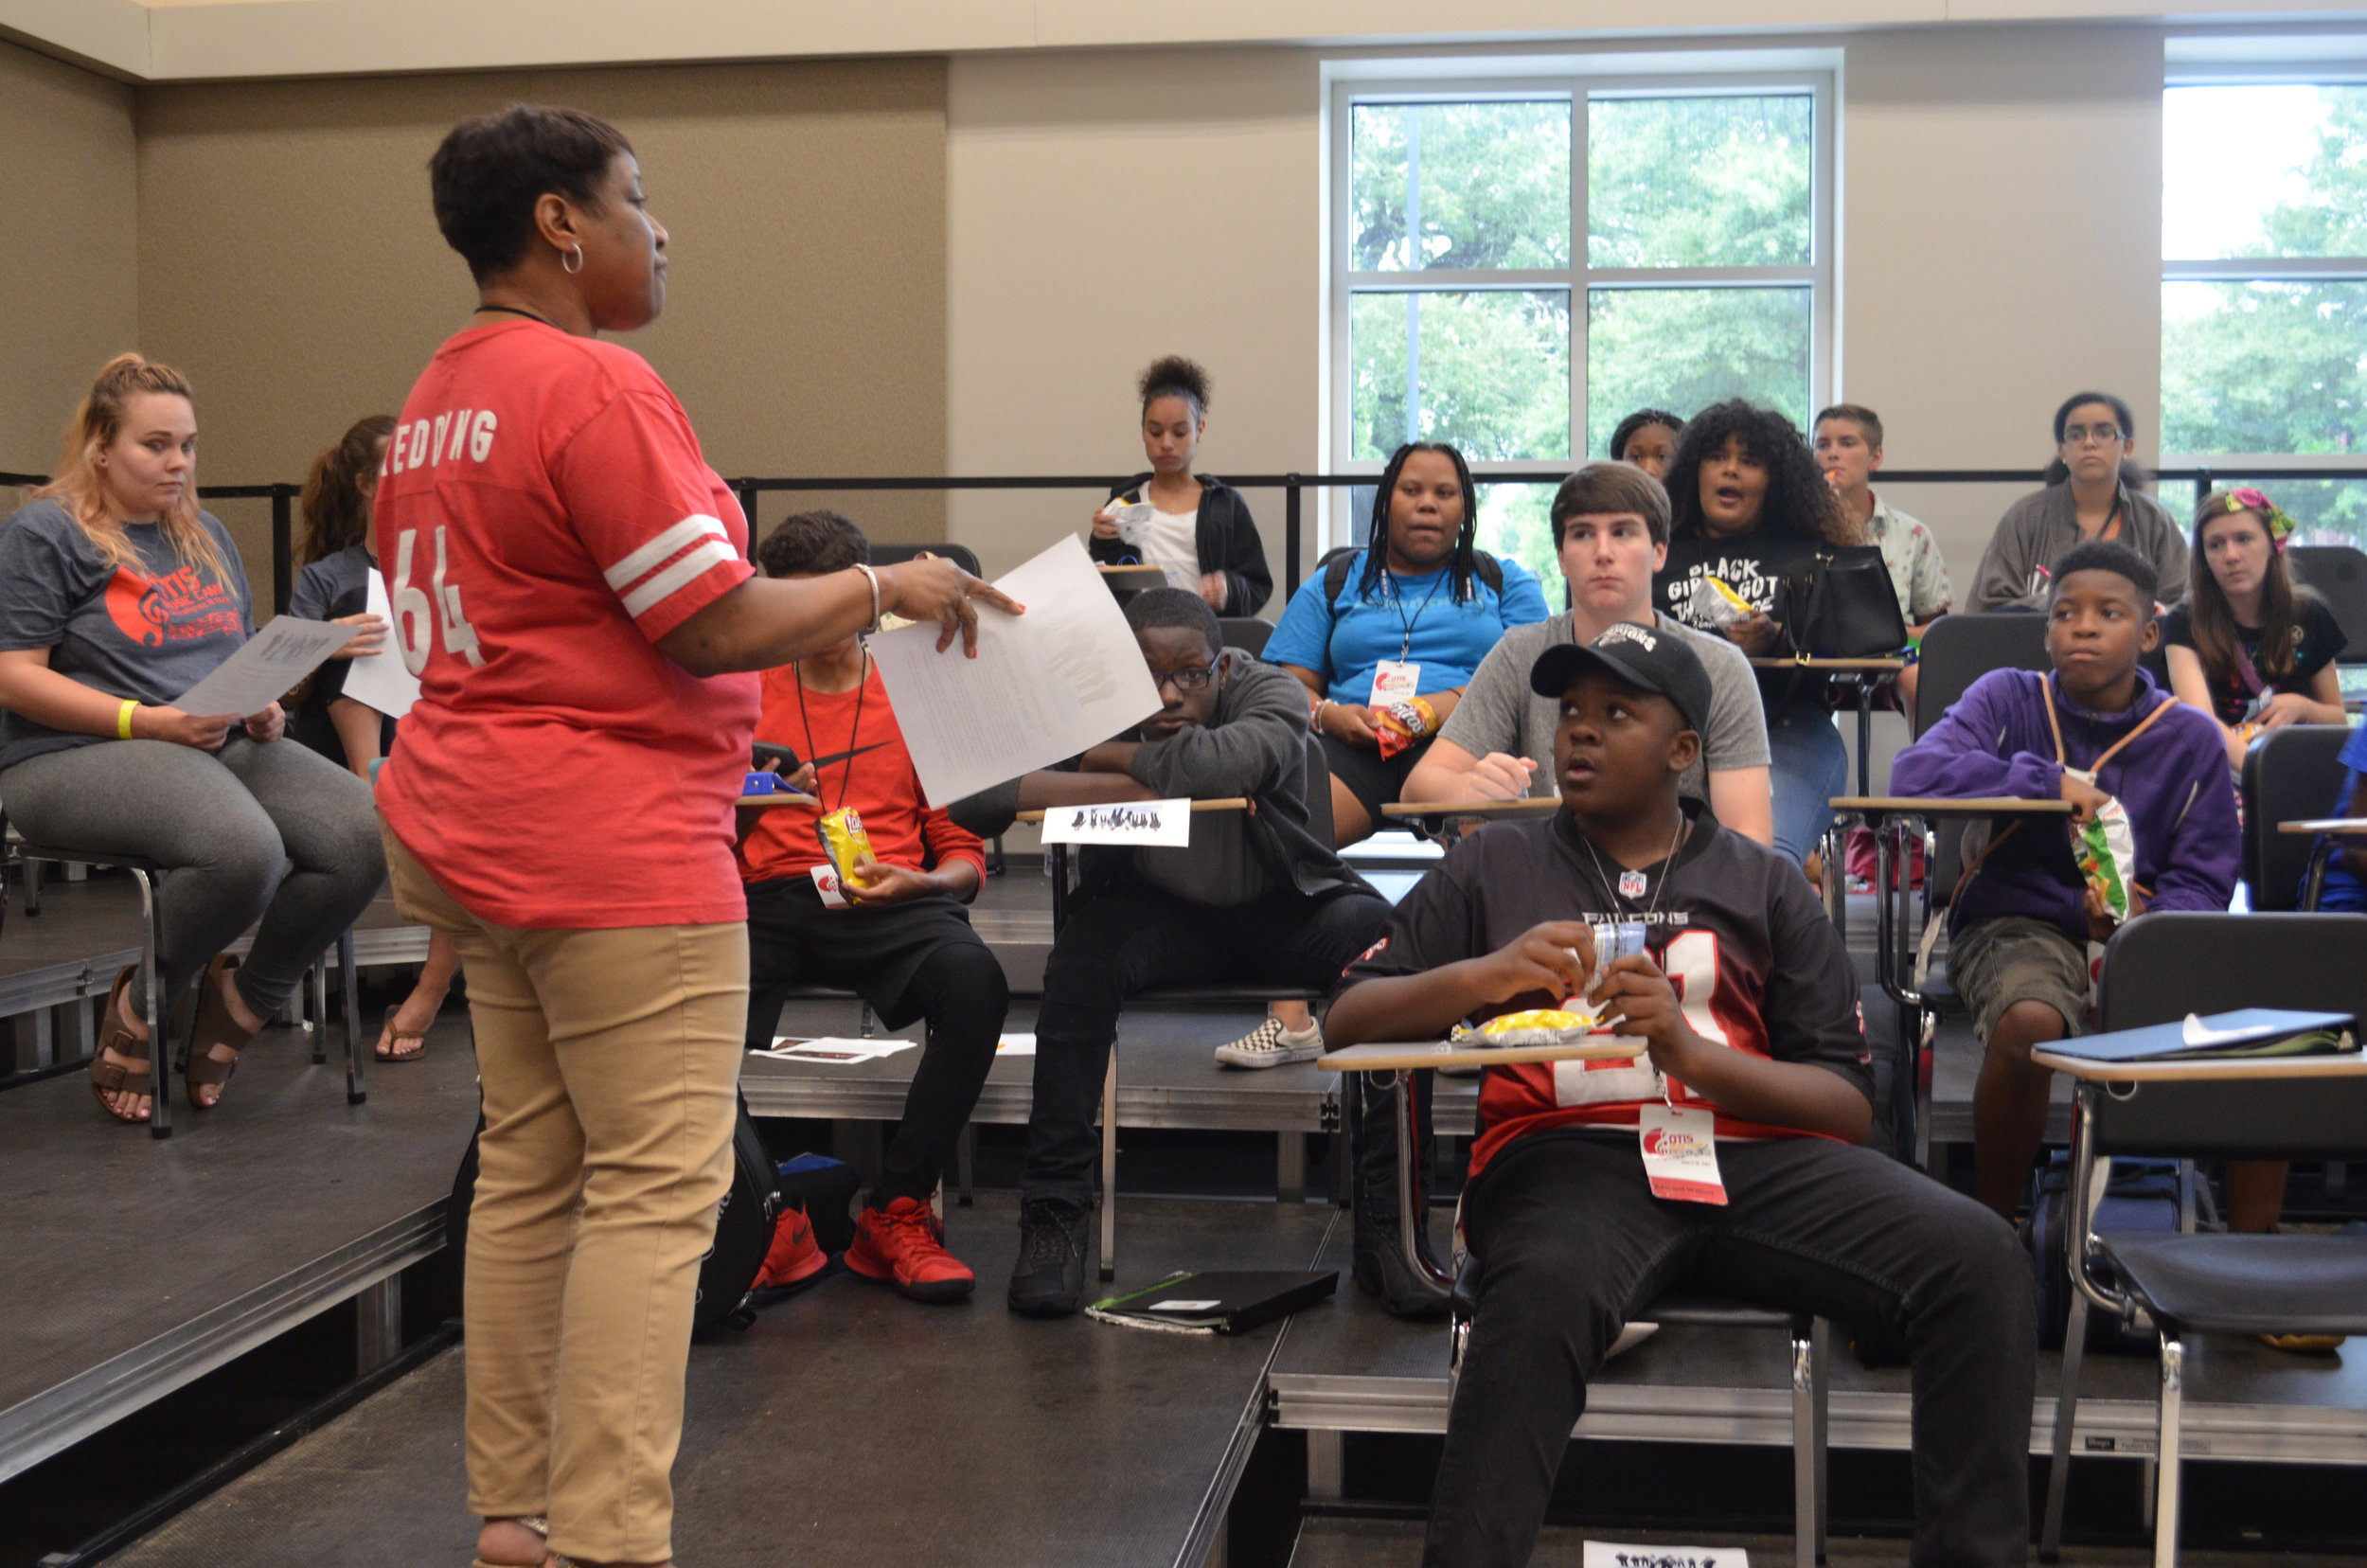 Karla Redding getting the campers ready for day two's presenters.